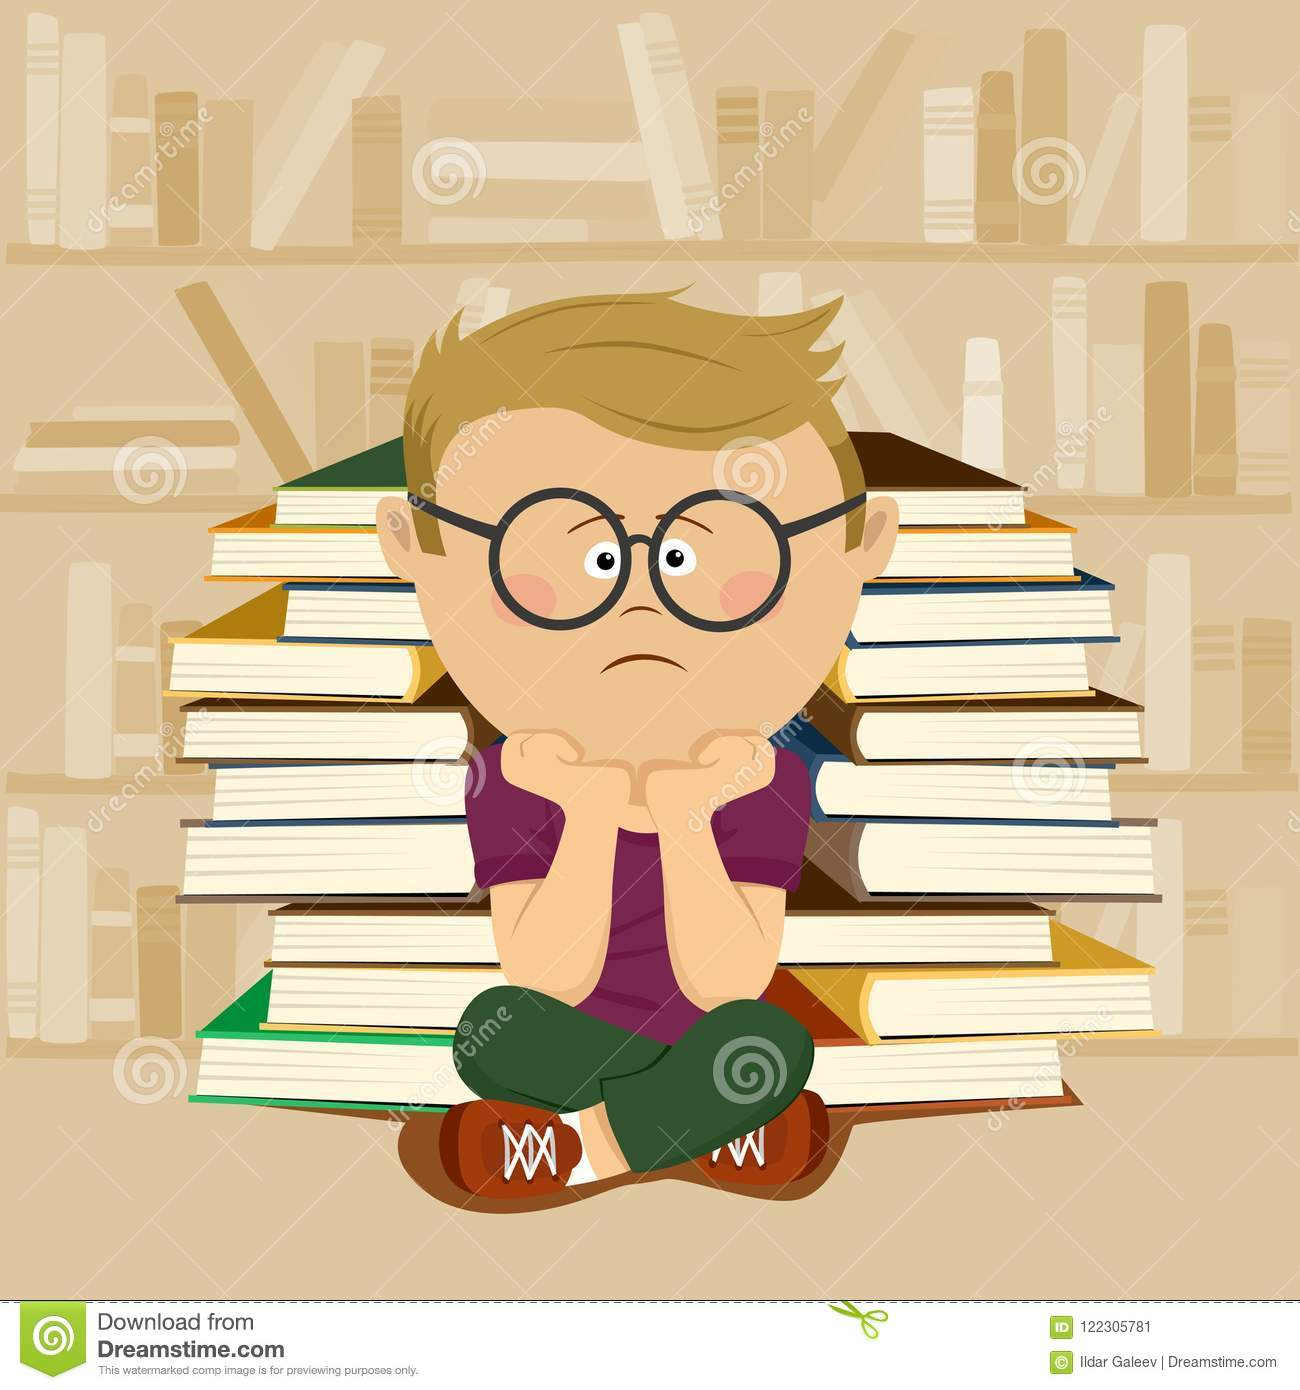 Unhappy nerd boy sitting in front of stack of books and bookshelf in school library